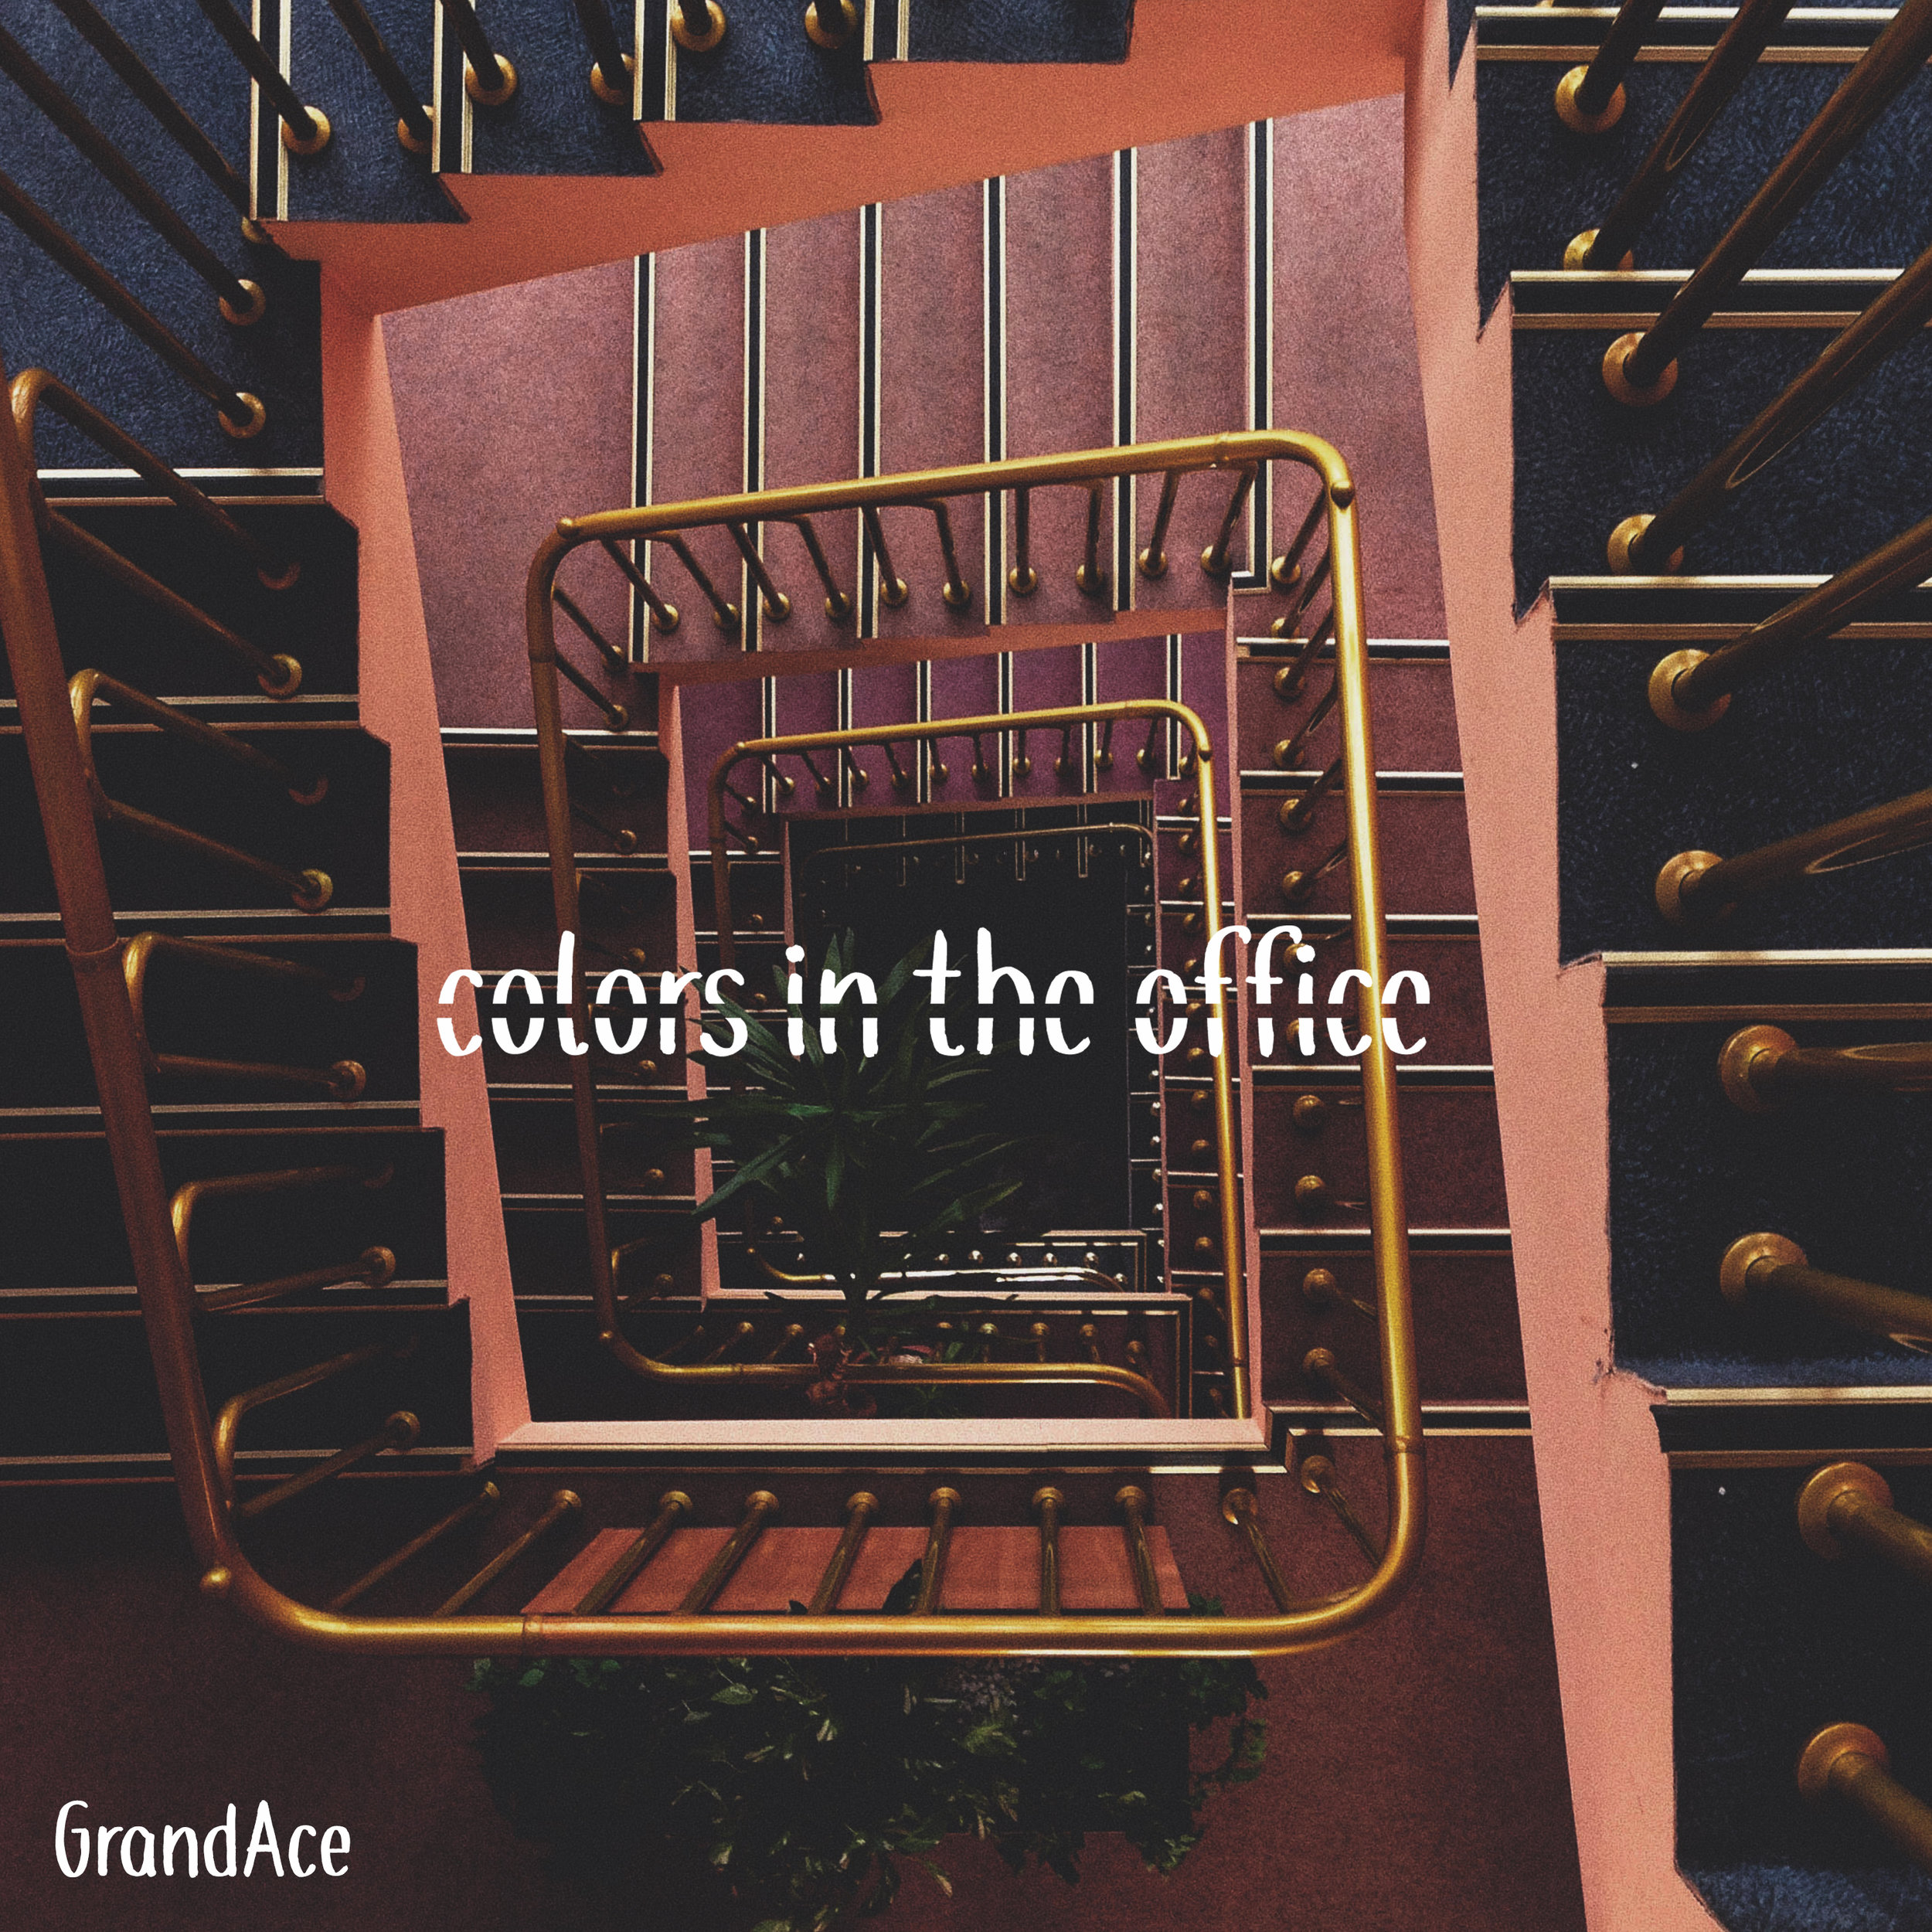 grandace-colors-in-the-office-cover.jpg